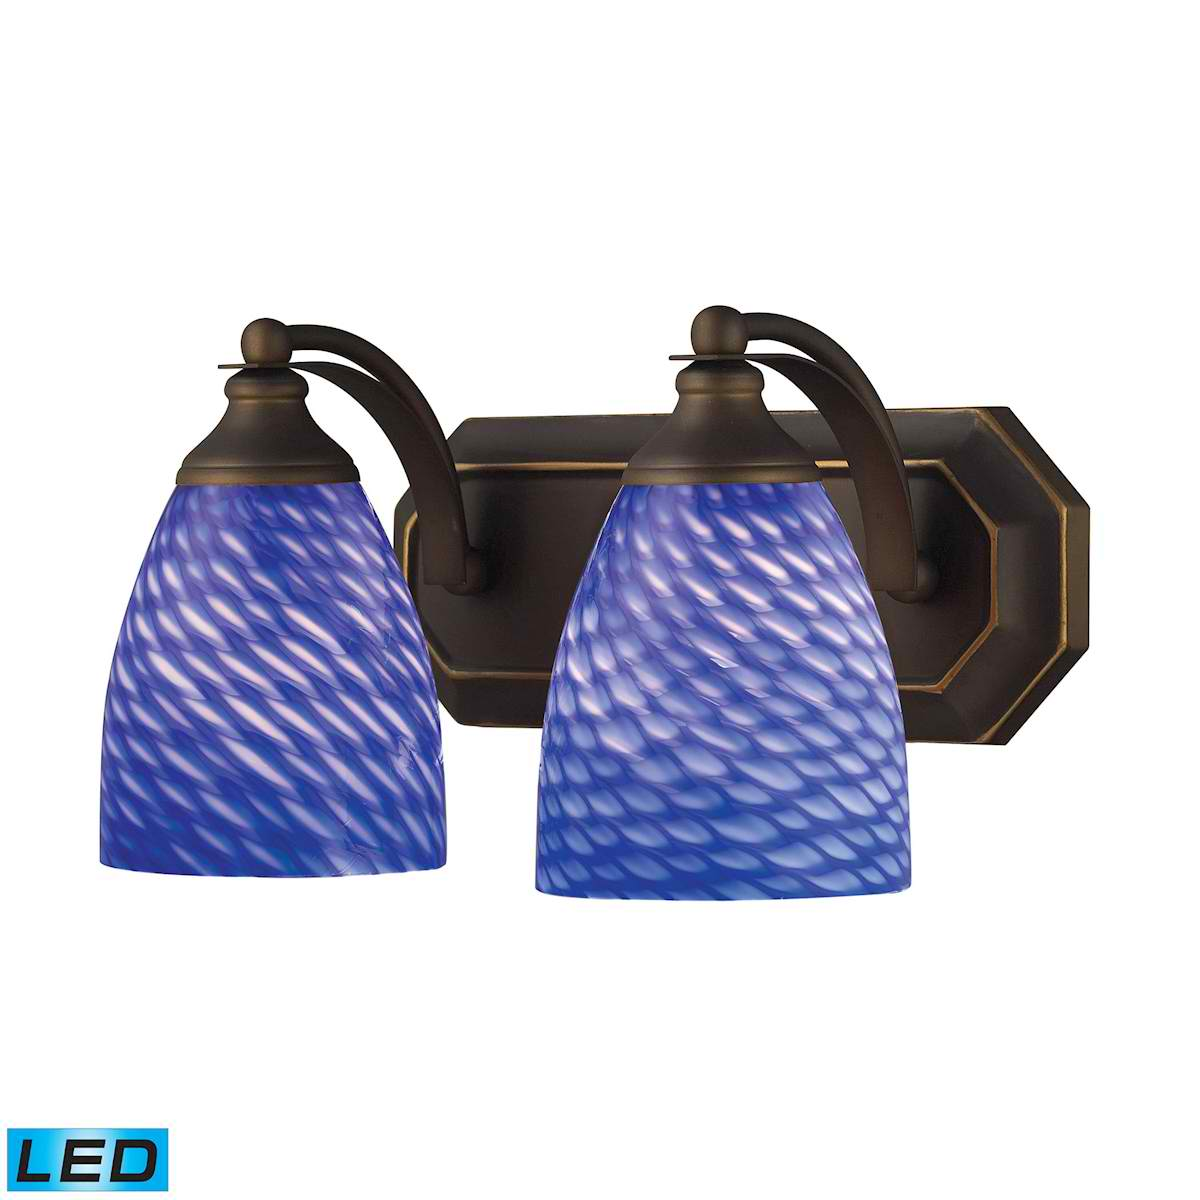 2 Light Vanity in Aged Bronze and Sapphire Glass - LED, 800 Lumens (1600 Lumens Total) with Full Scale